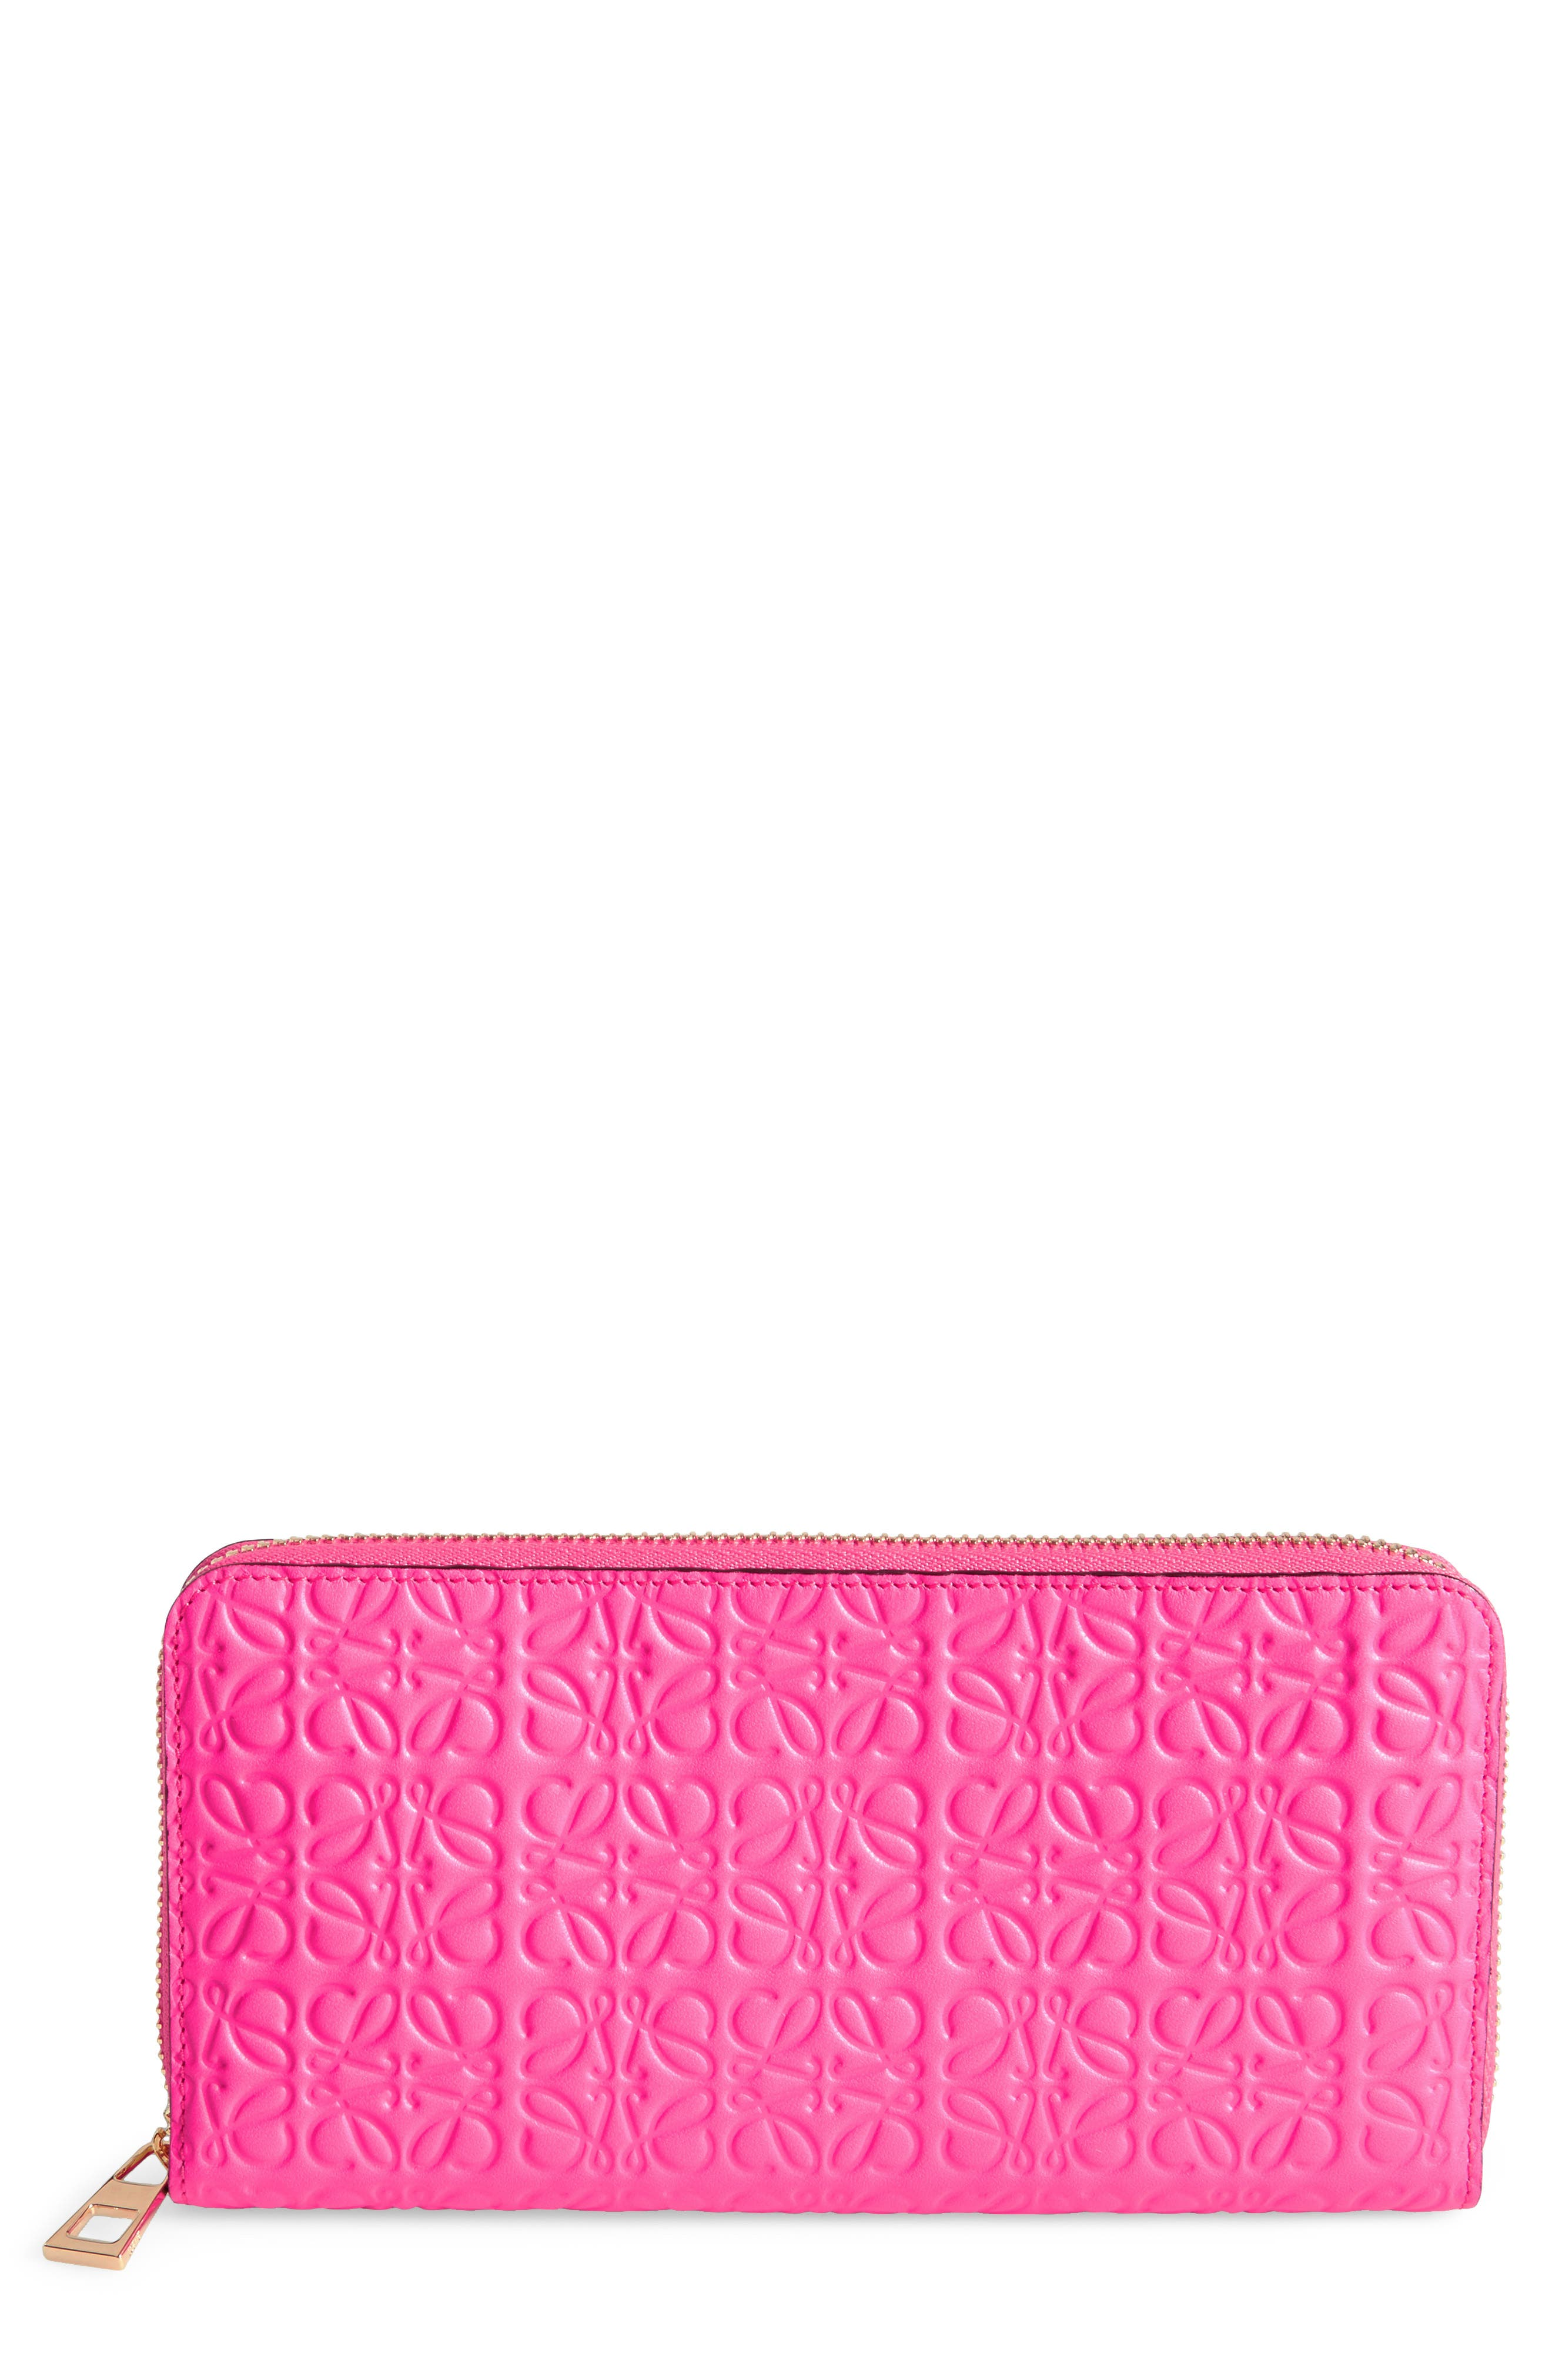 Leather Zip Around Wallet,                             Main thumbnail 1, color,                             690